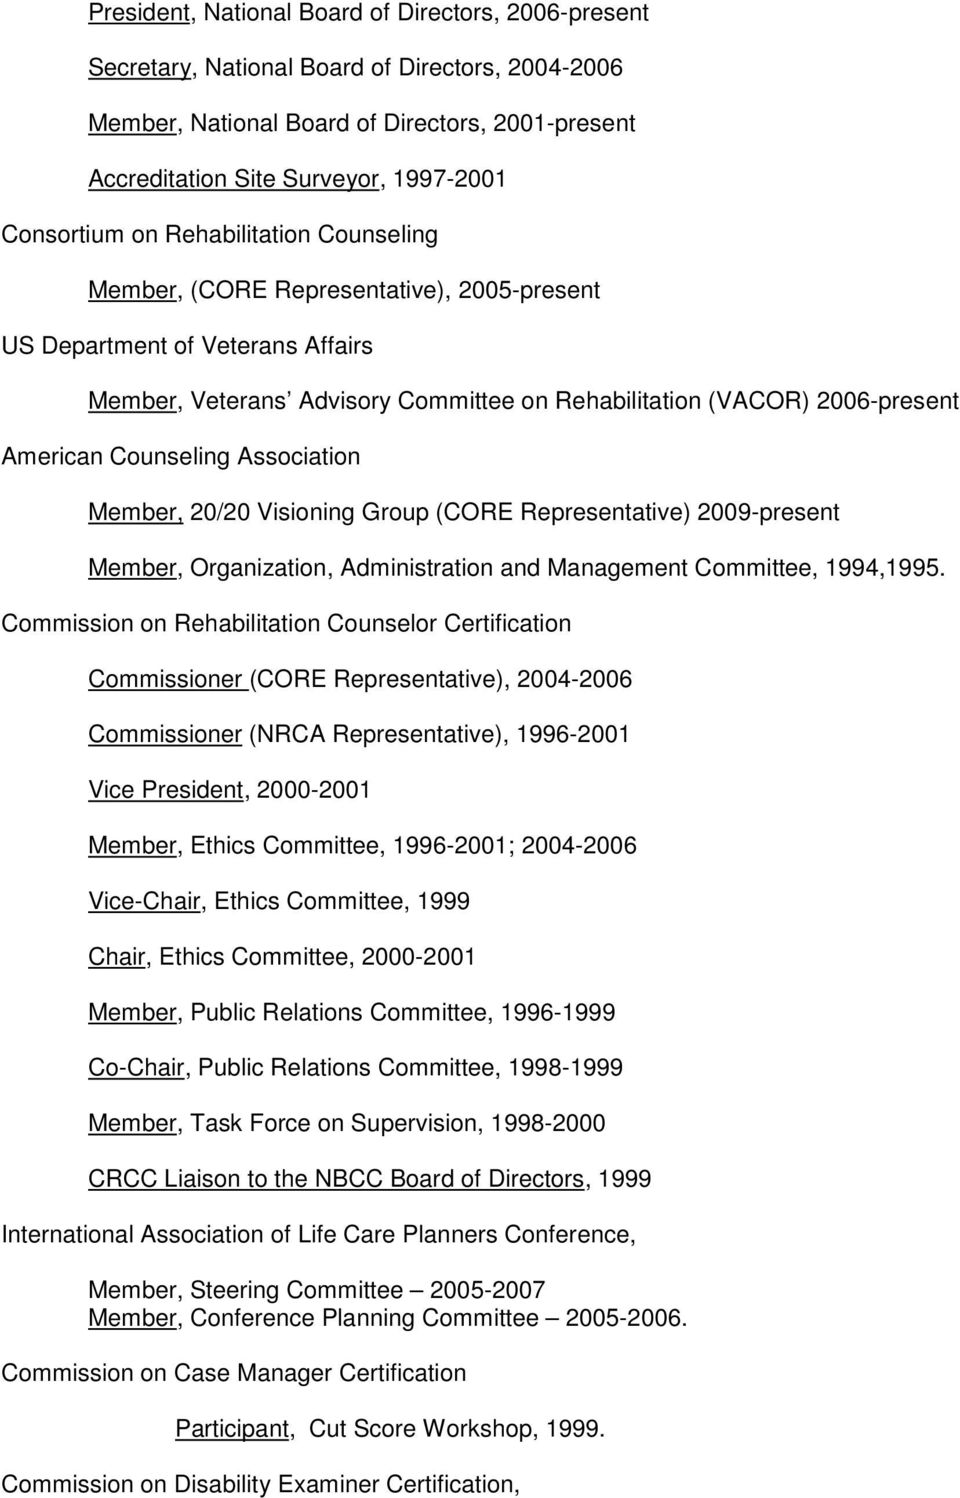 American Counseling Association Member, 20/20 Visioning Group (CORE Representative) 2009-present Member, Organization, Administration and Management Committee, 1994,1995.